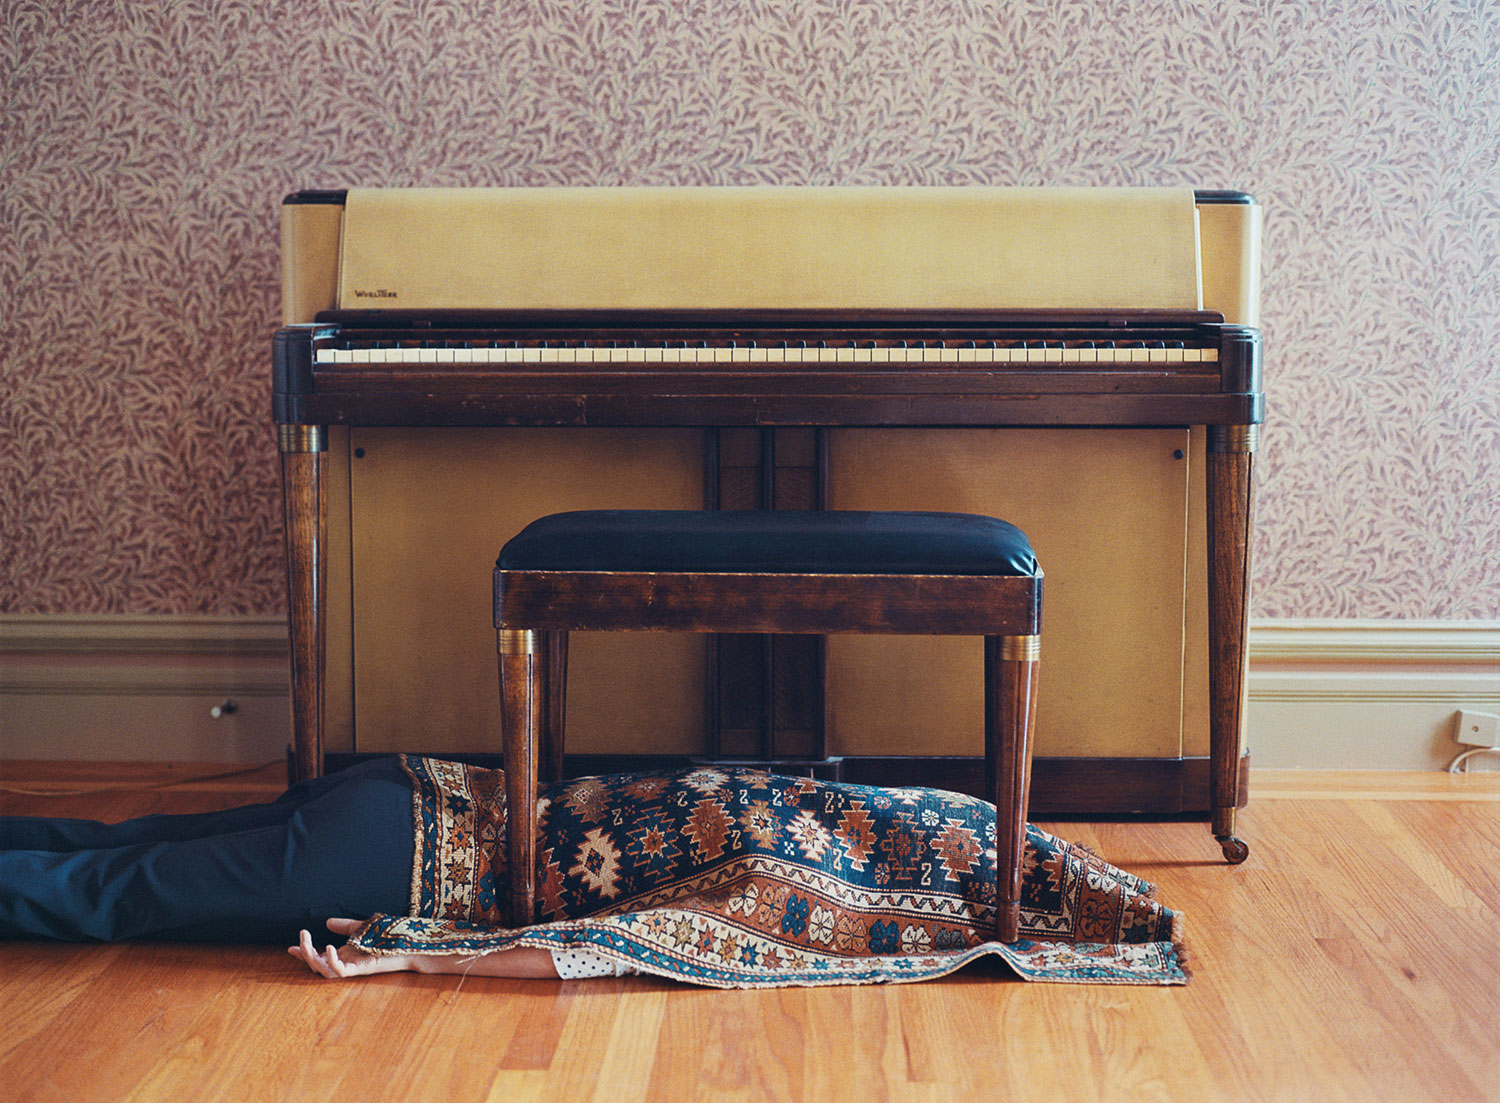 Under the Rug, Under the Bench, 2011 by Lee Materazzi | Yellowtrace.